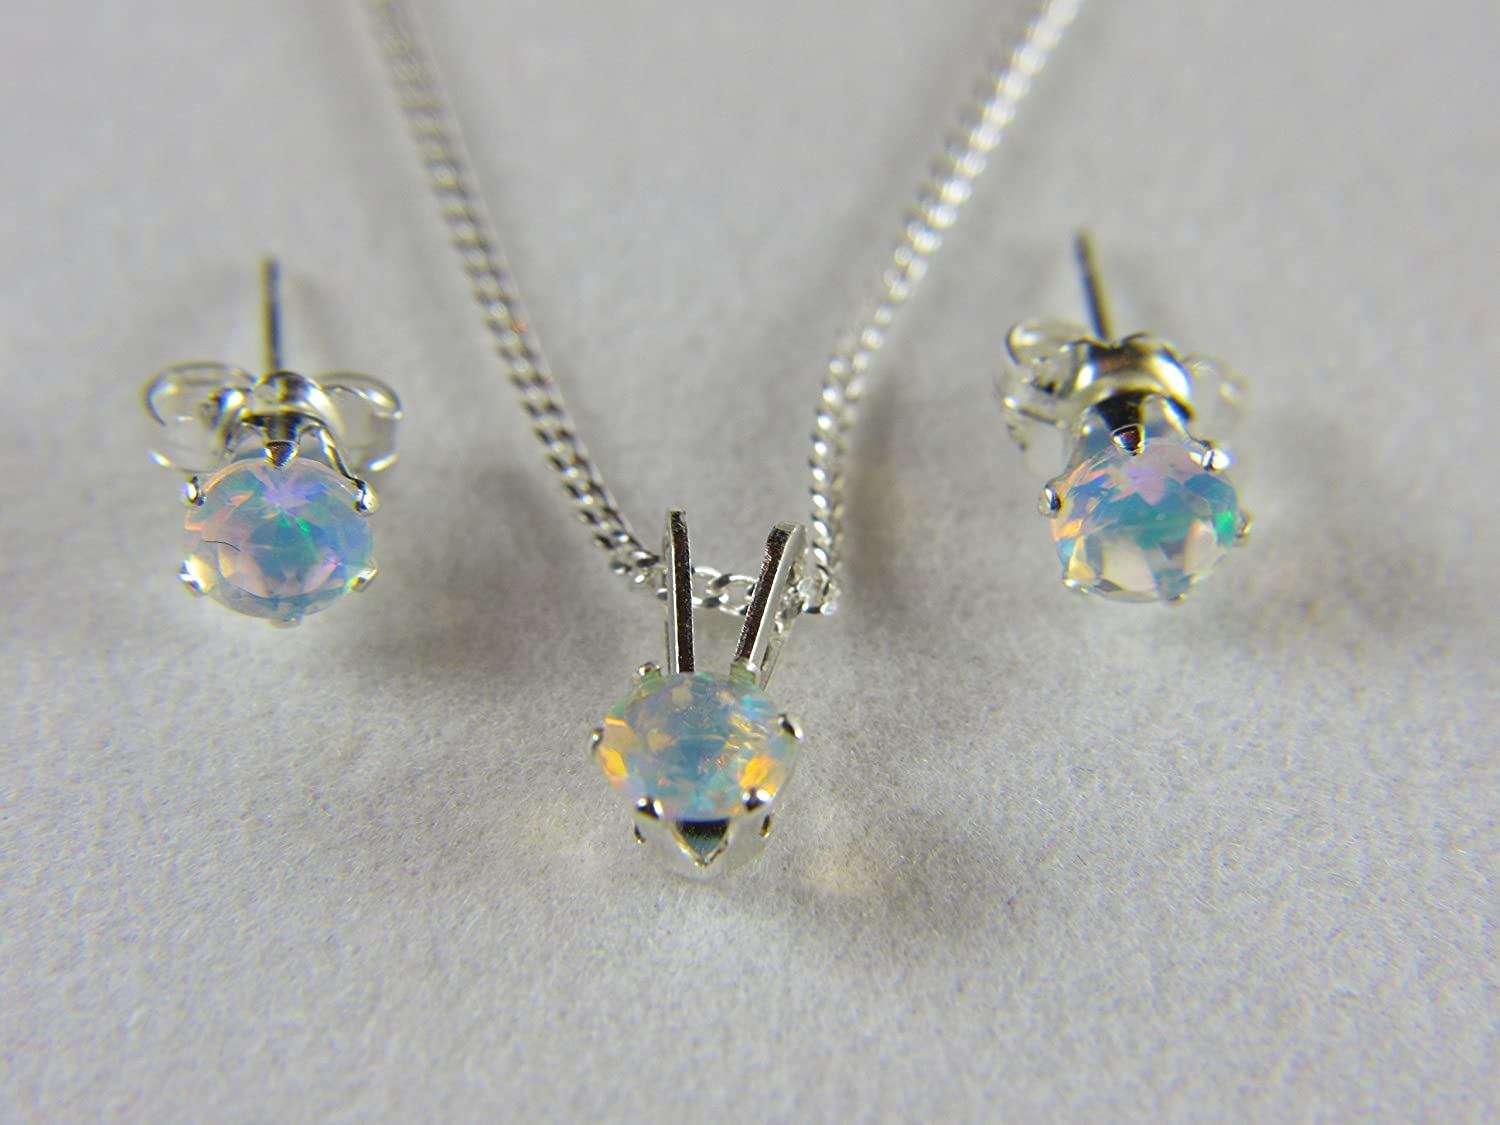 4mm Round Opal October birthstone. Natural Ethiopian Welo Fiery Opals in Sterling Silver SET of Necklace /& Earrings AAA+ grade